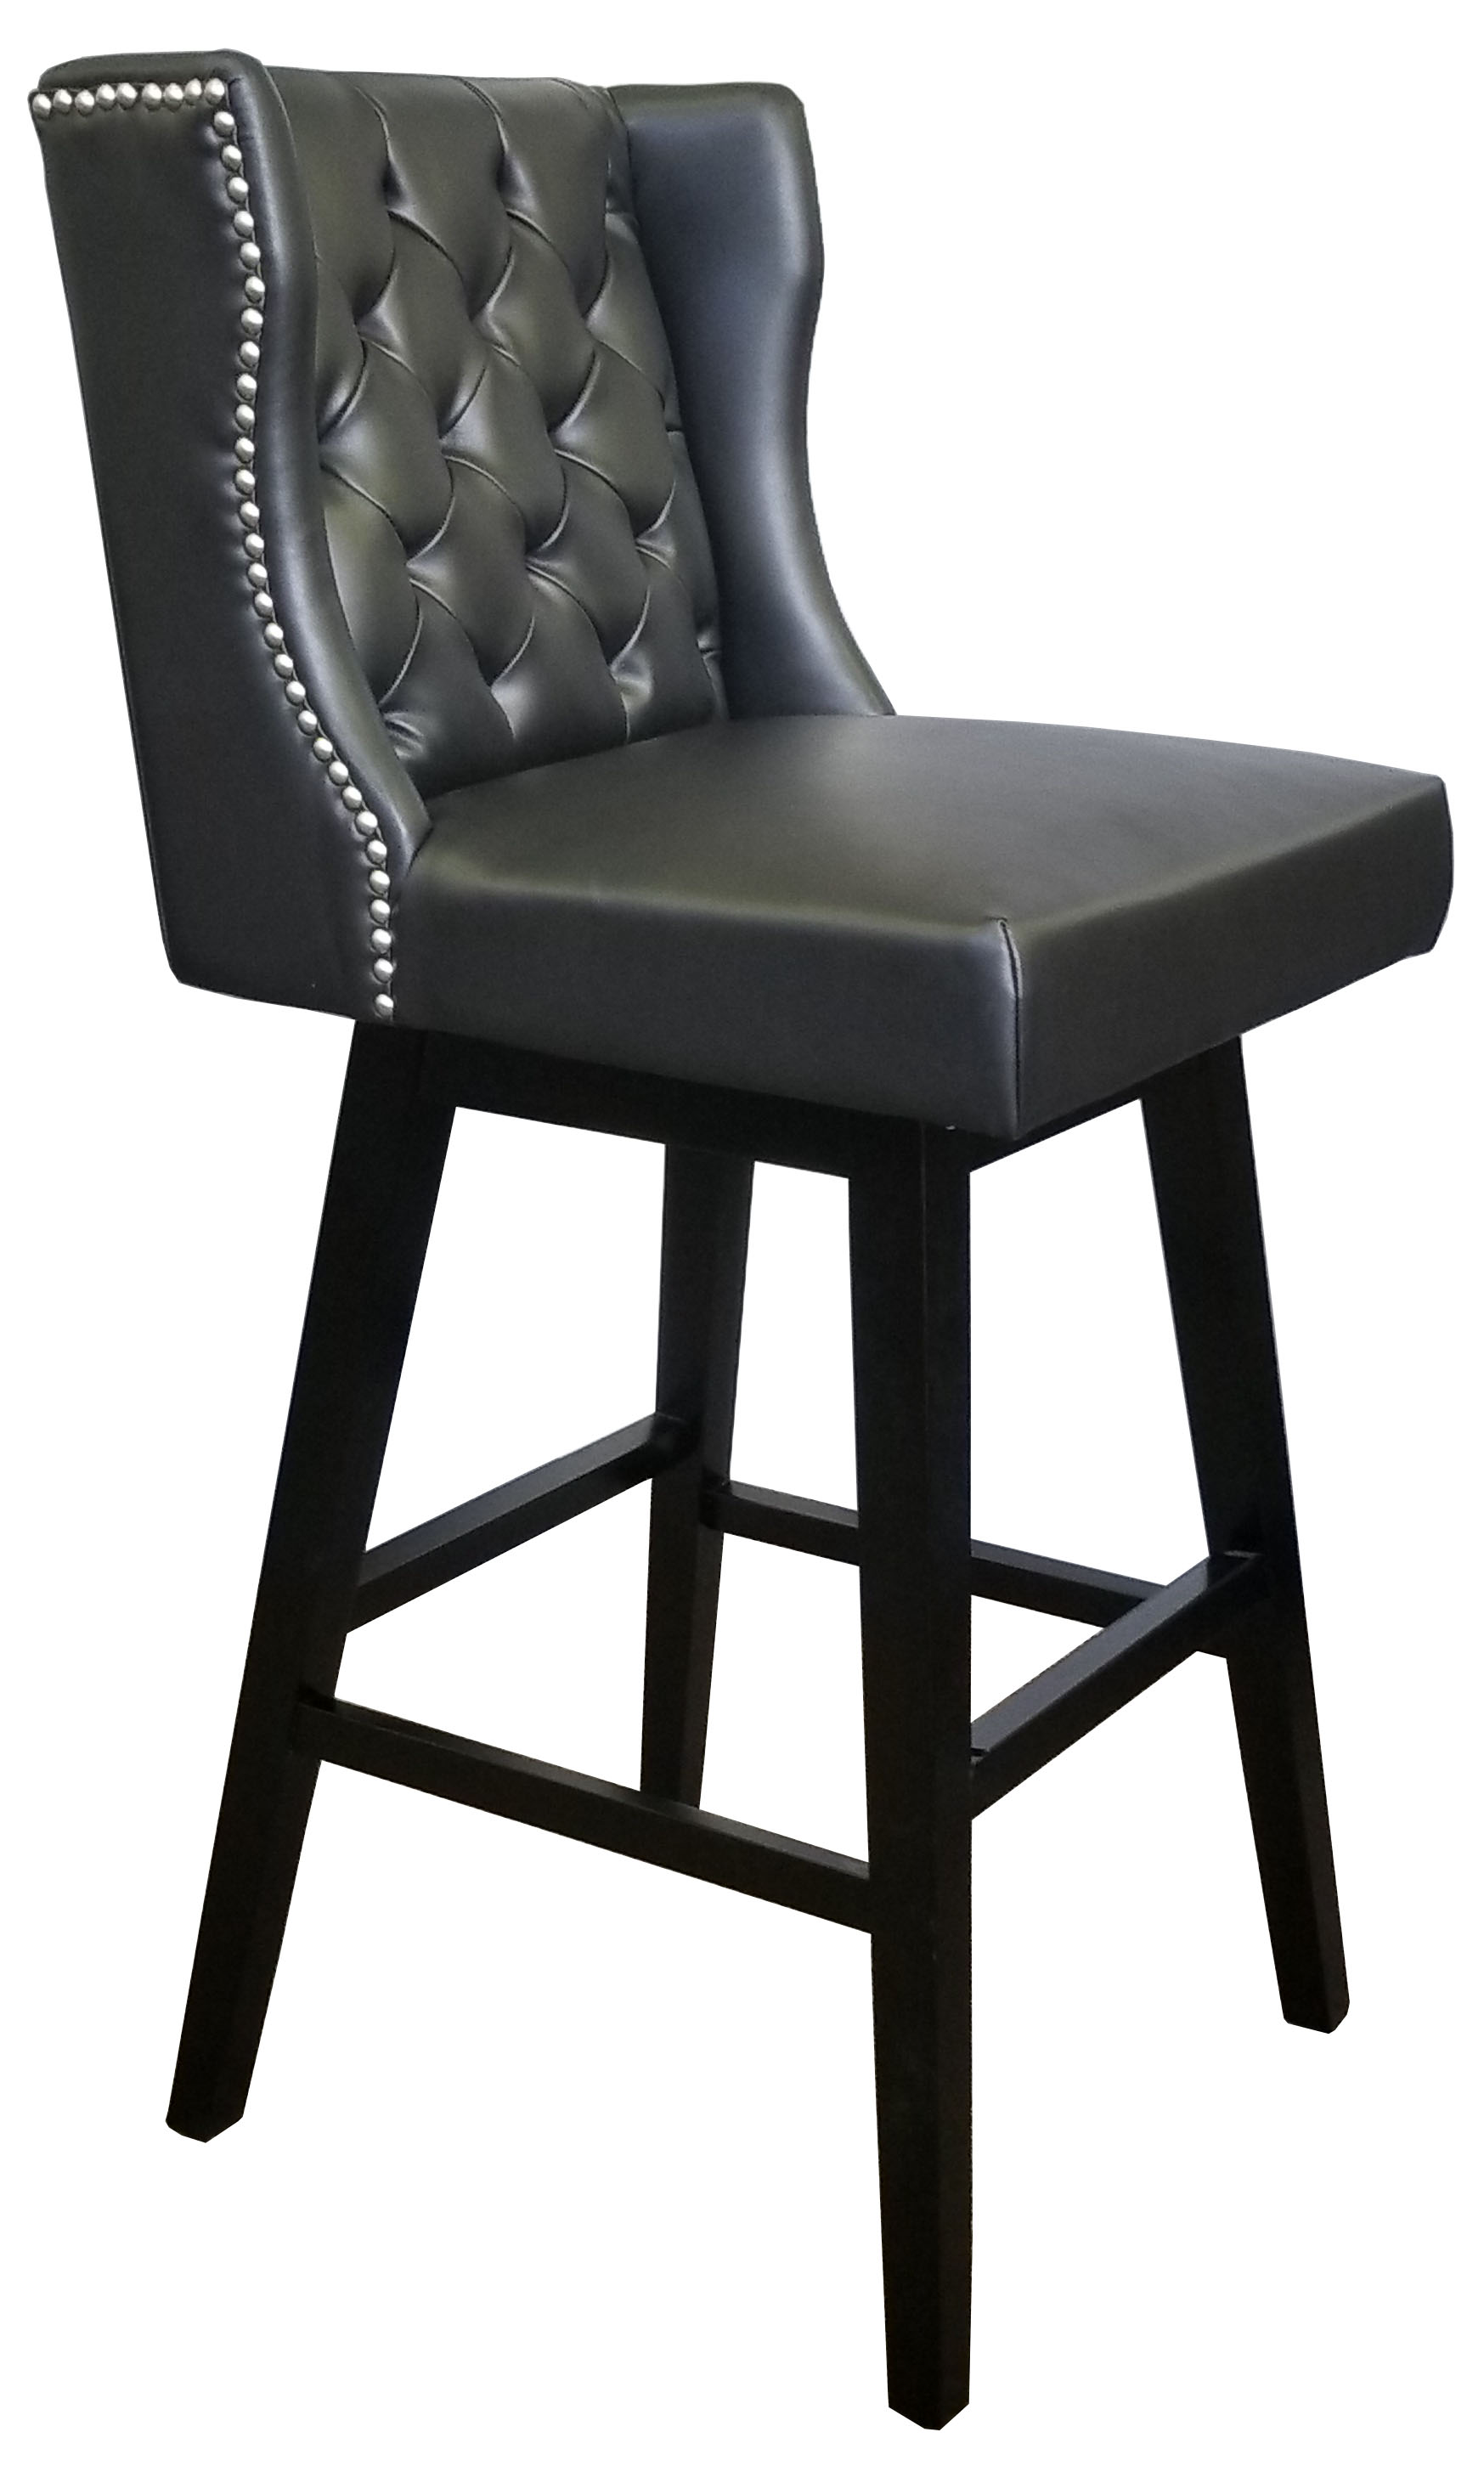 Bar Stools  Kitchen Counter Stools  R1553 Black Swivel